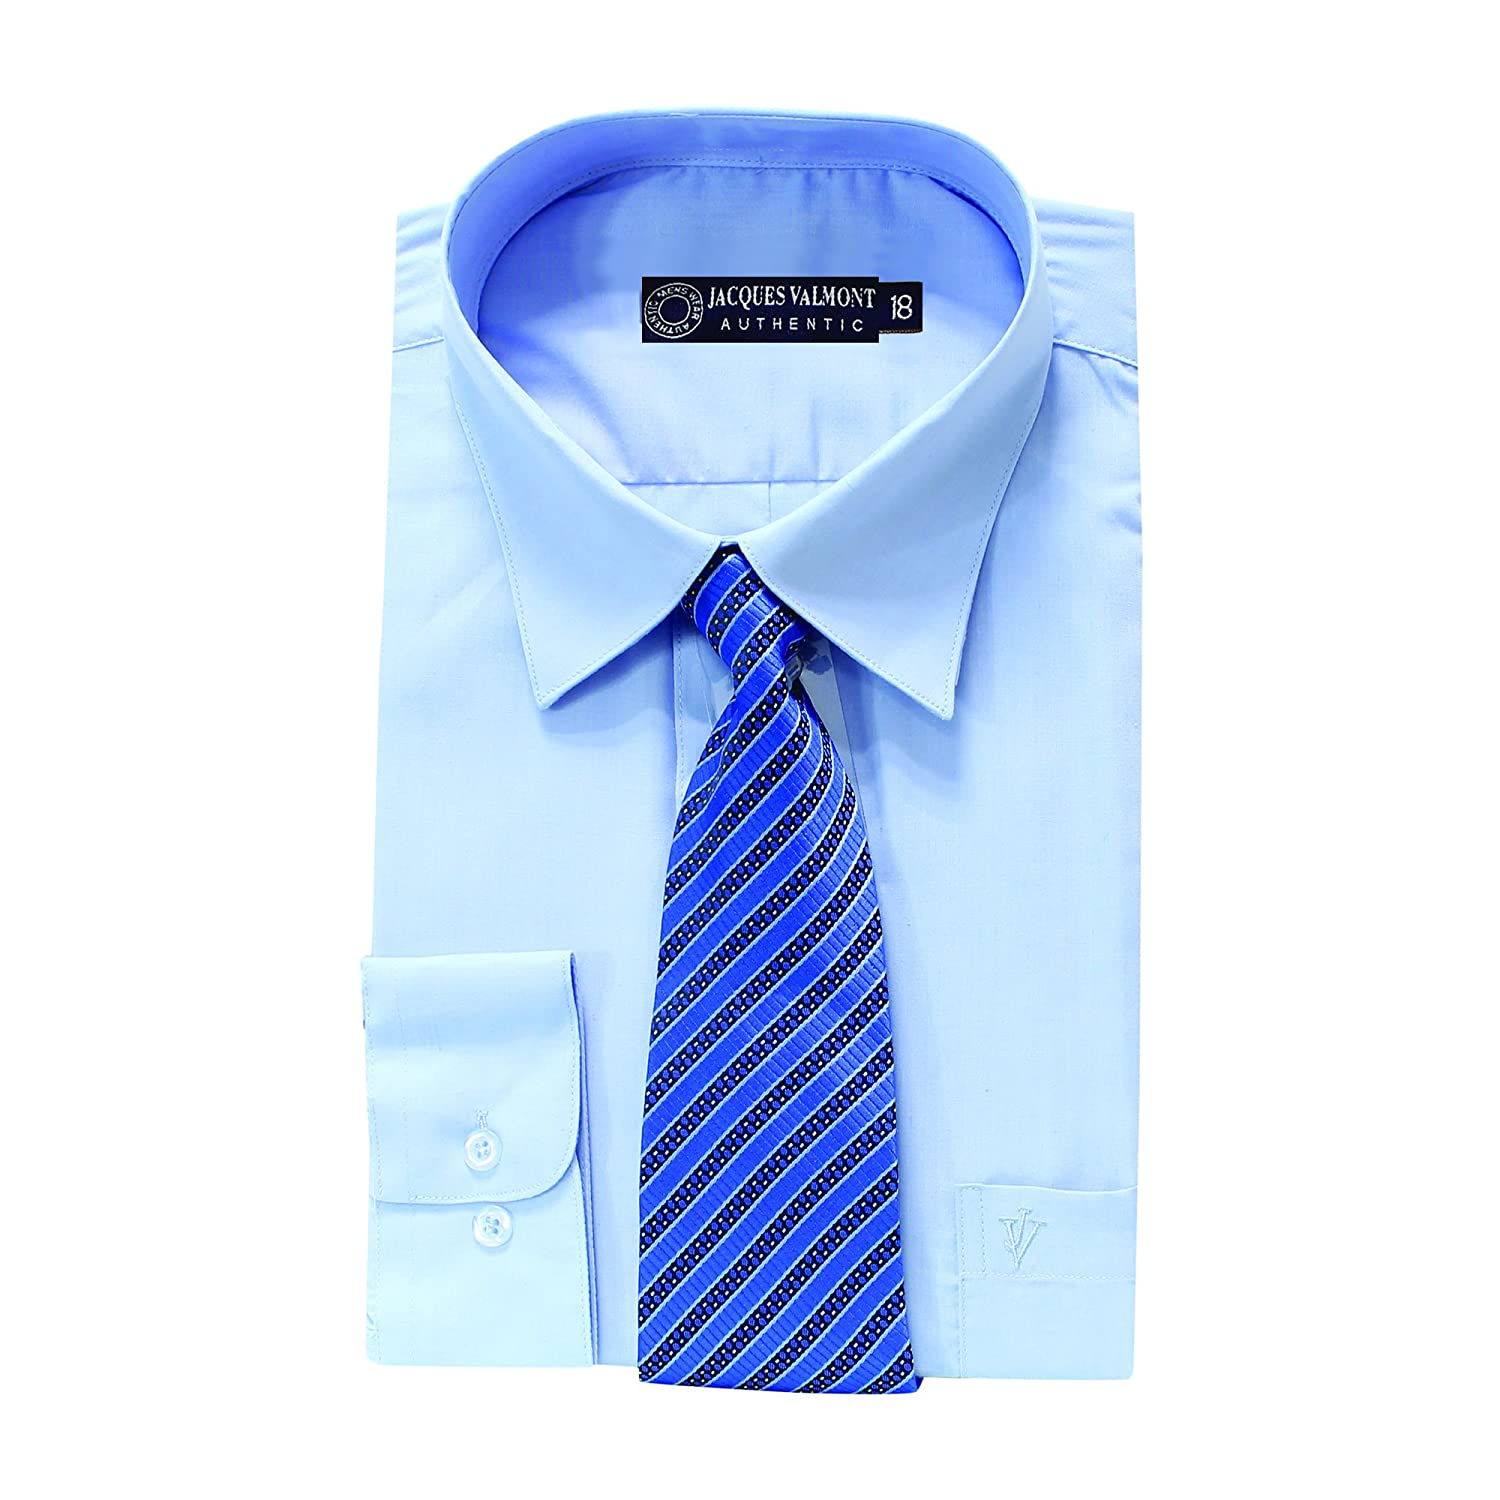 Jacques Valmont Boys Long Sleeve Shirt with Tie and Accessories JV/_BSH/_1 Multiple Colors